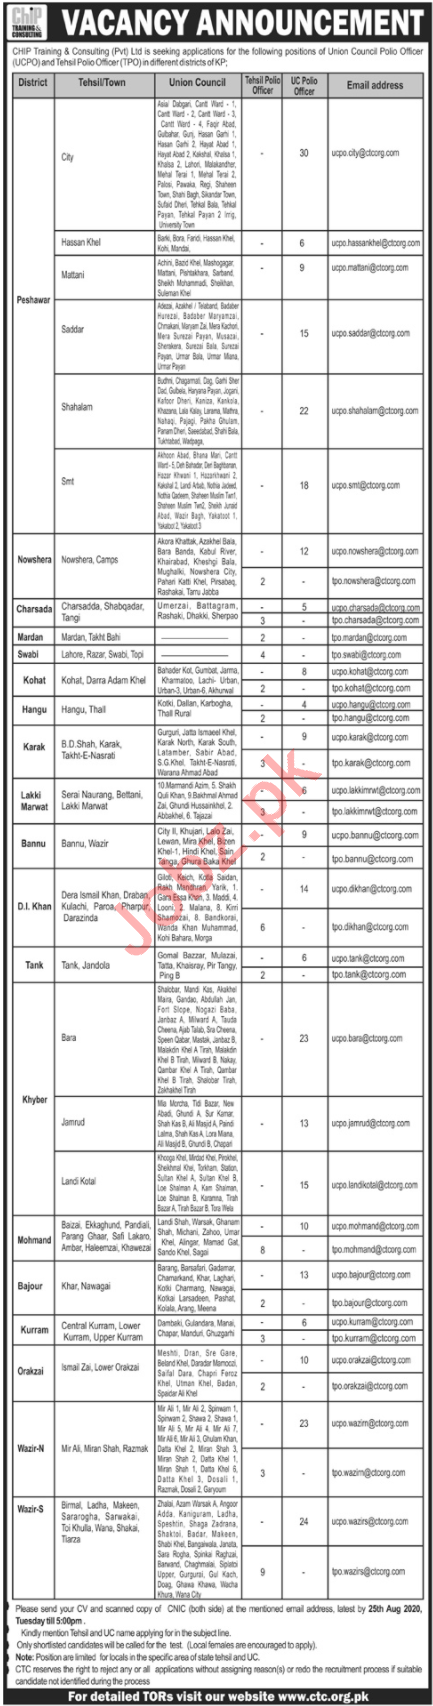 CHIP Training & Consulting KP Jobs for TPO & UCPO Officer